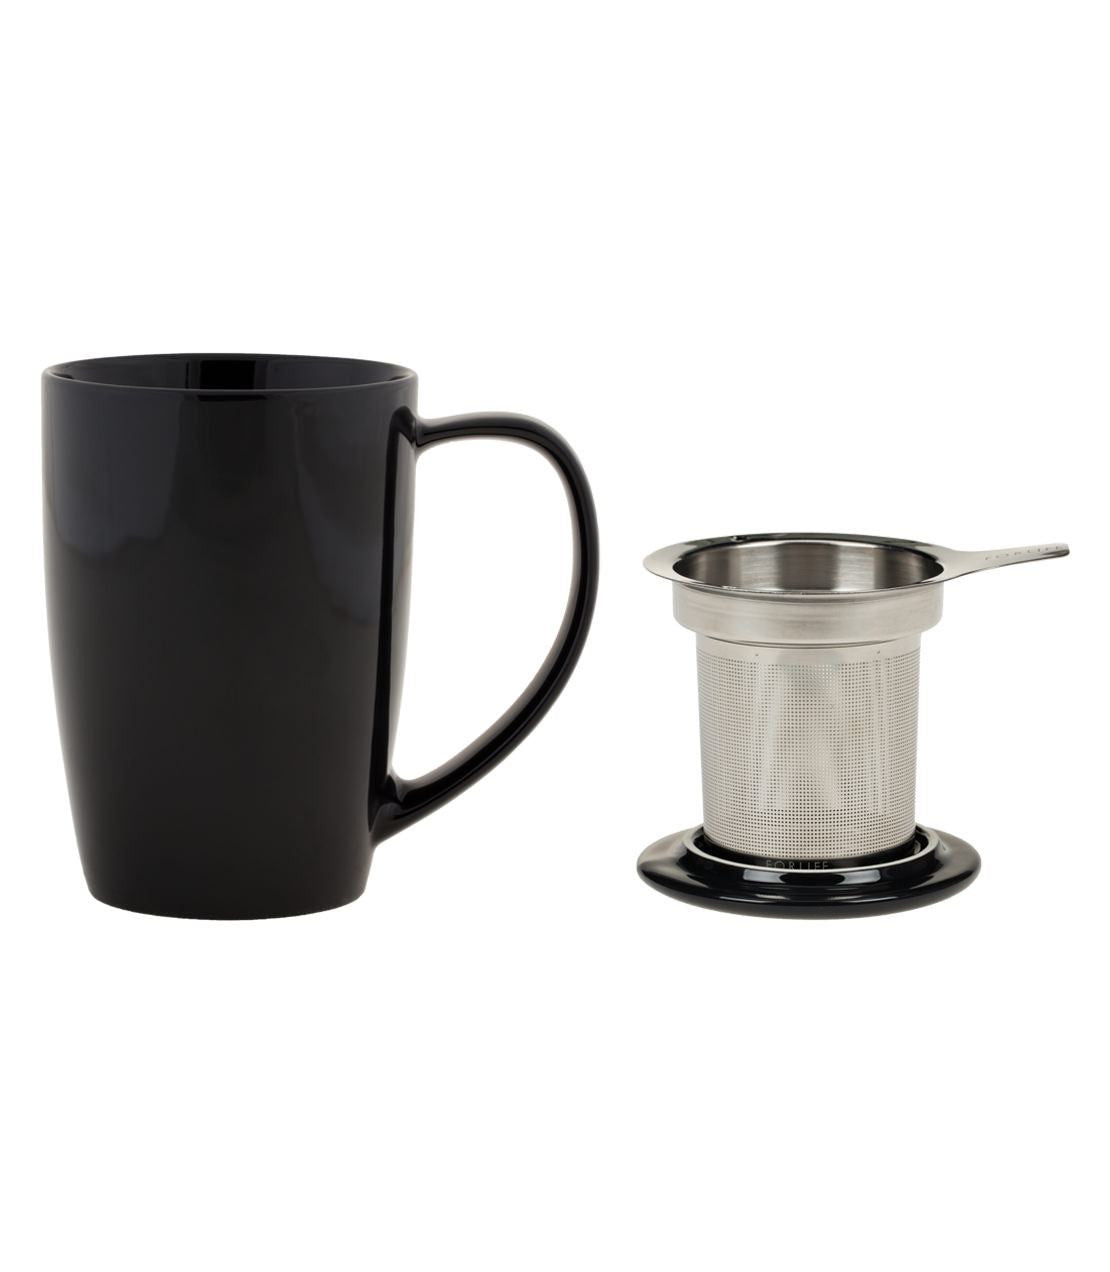 White FORLIFE Curve Tall Tea Mug with Infuser and Lid 15 ounces